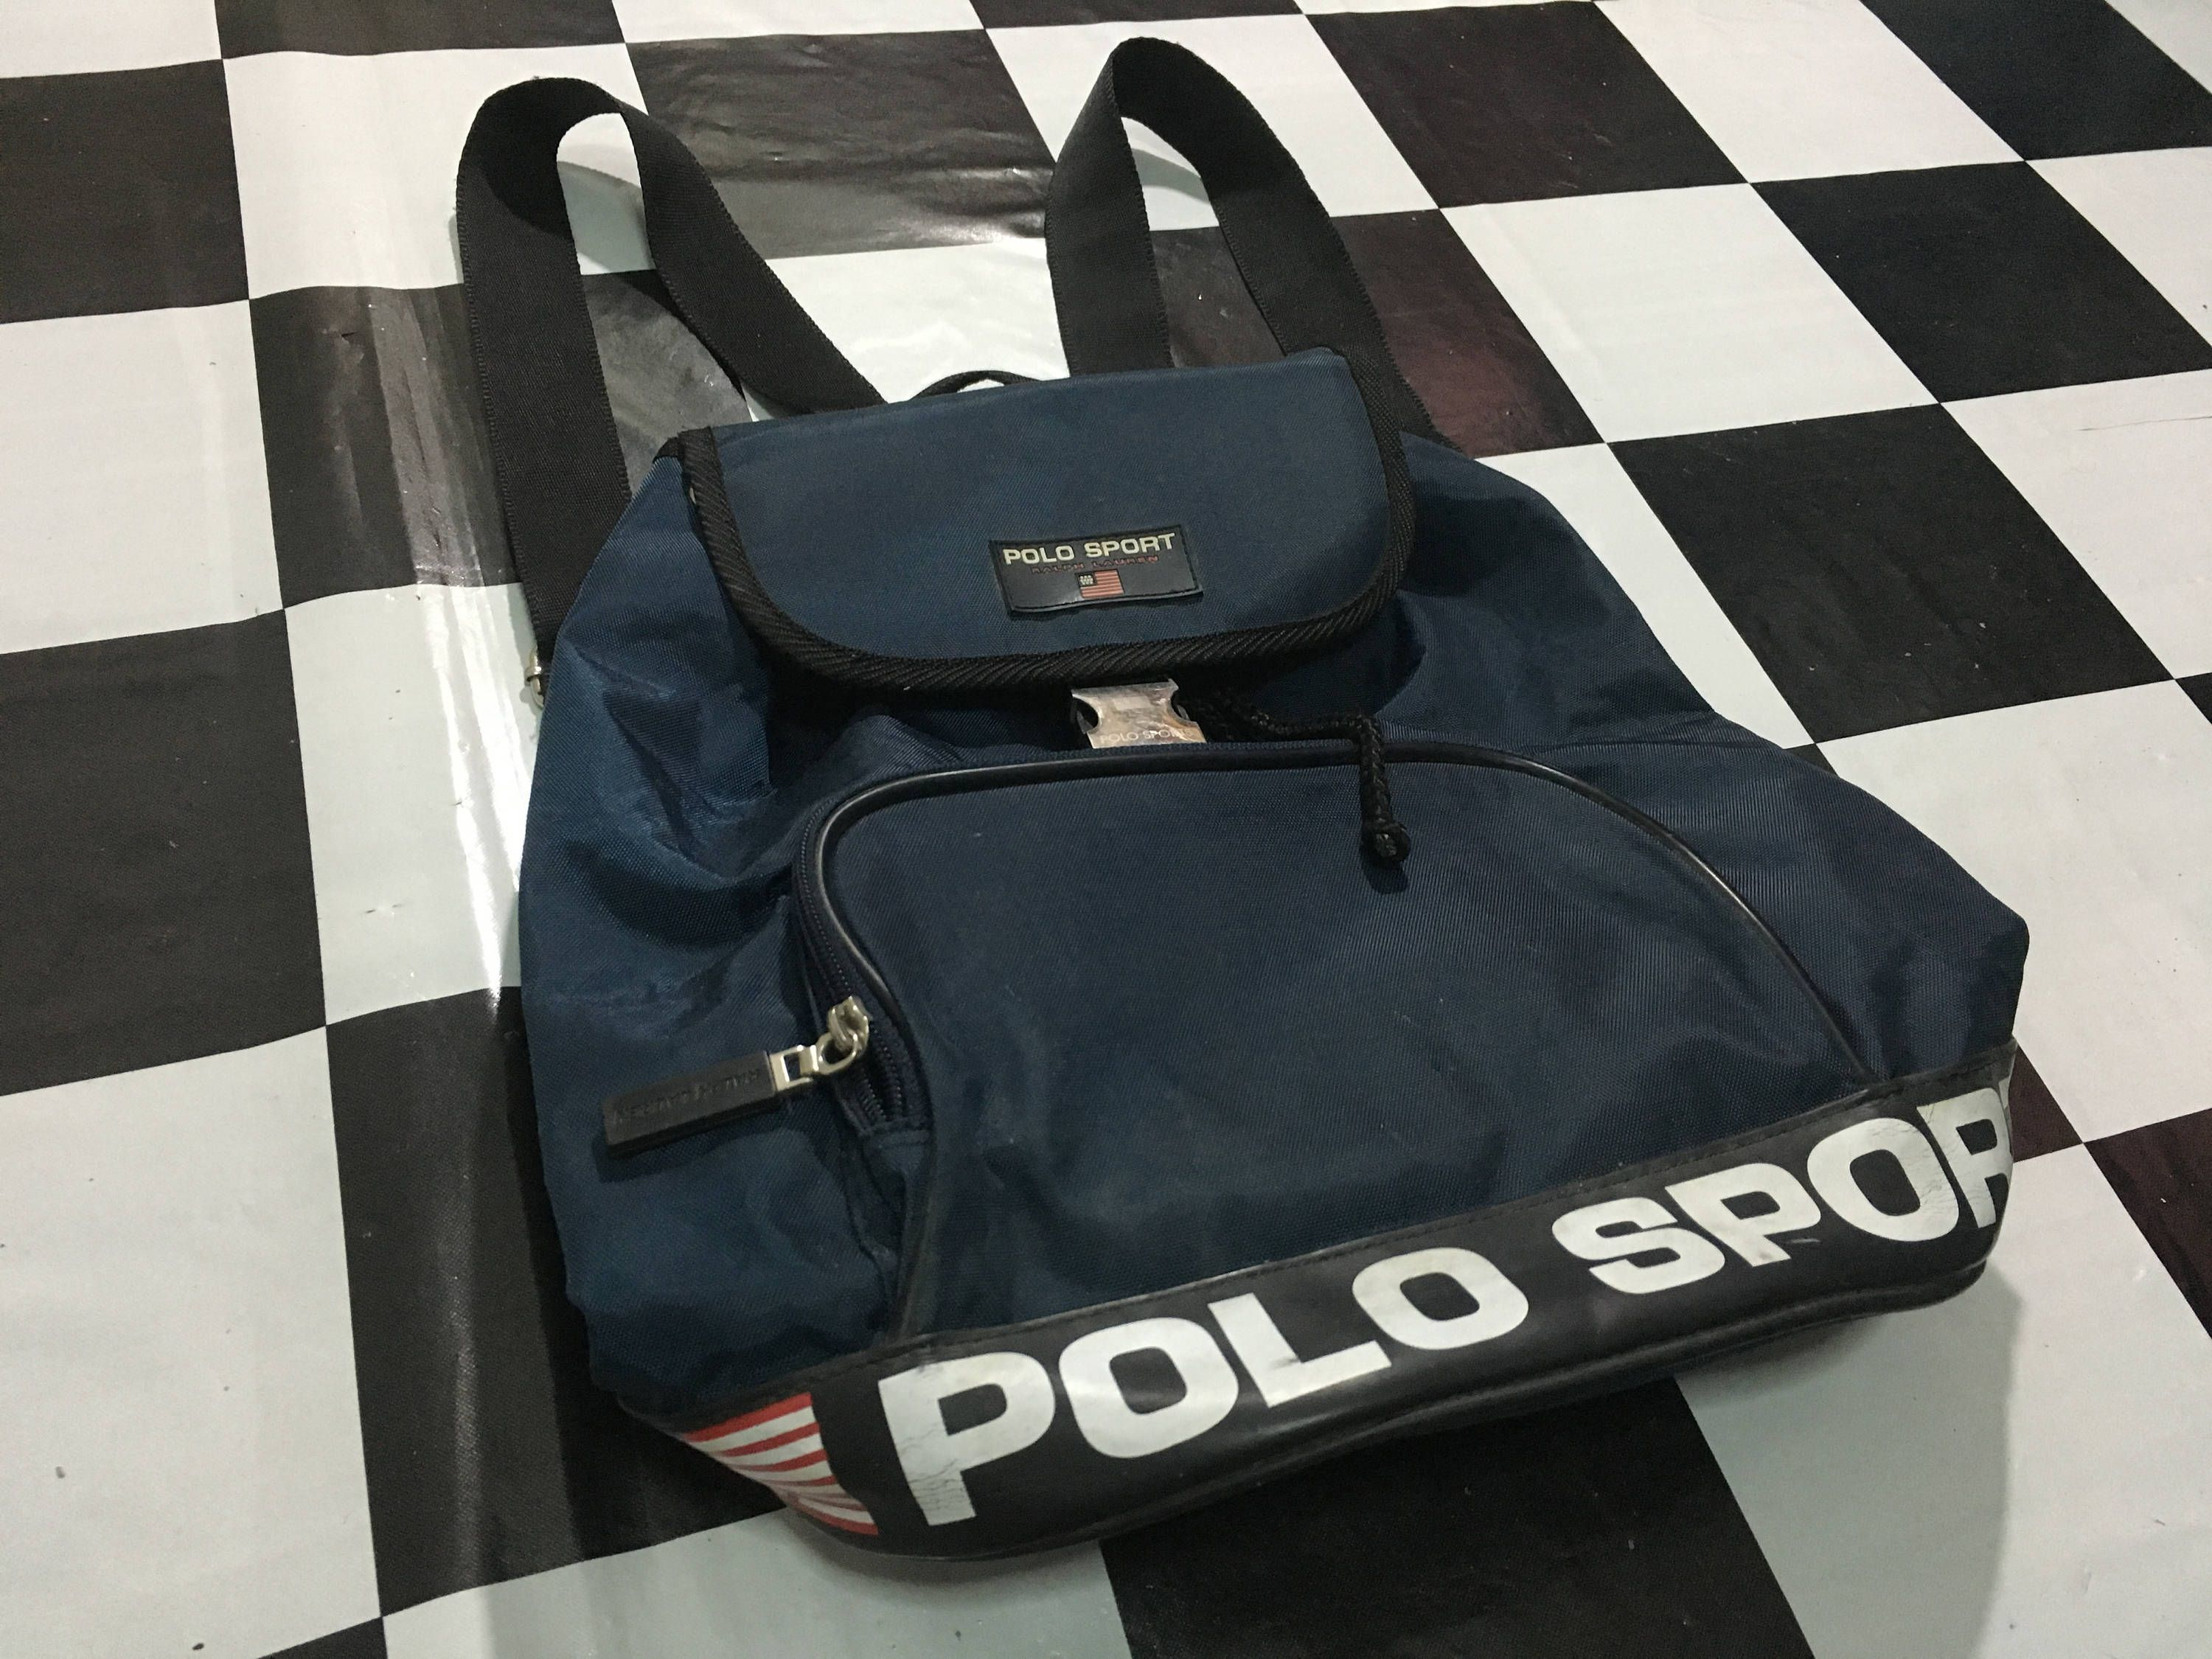 0f6e986b7 Vintage Polo sport backpack spell out logo on sash polo sport bag Excellent  condition Polo sport ralph lauren by AlivevintageShop on Etsy